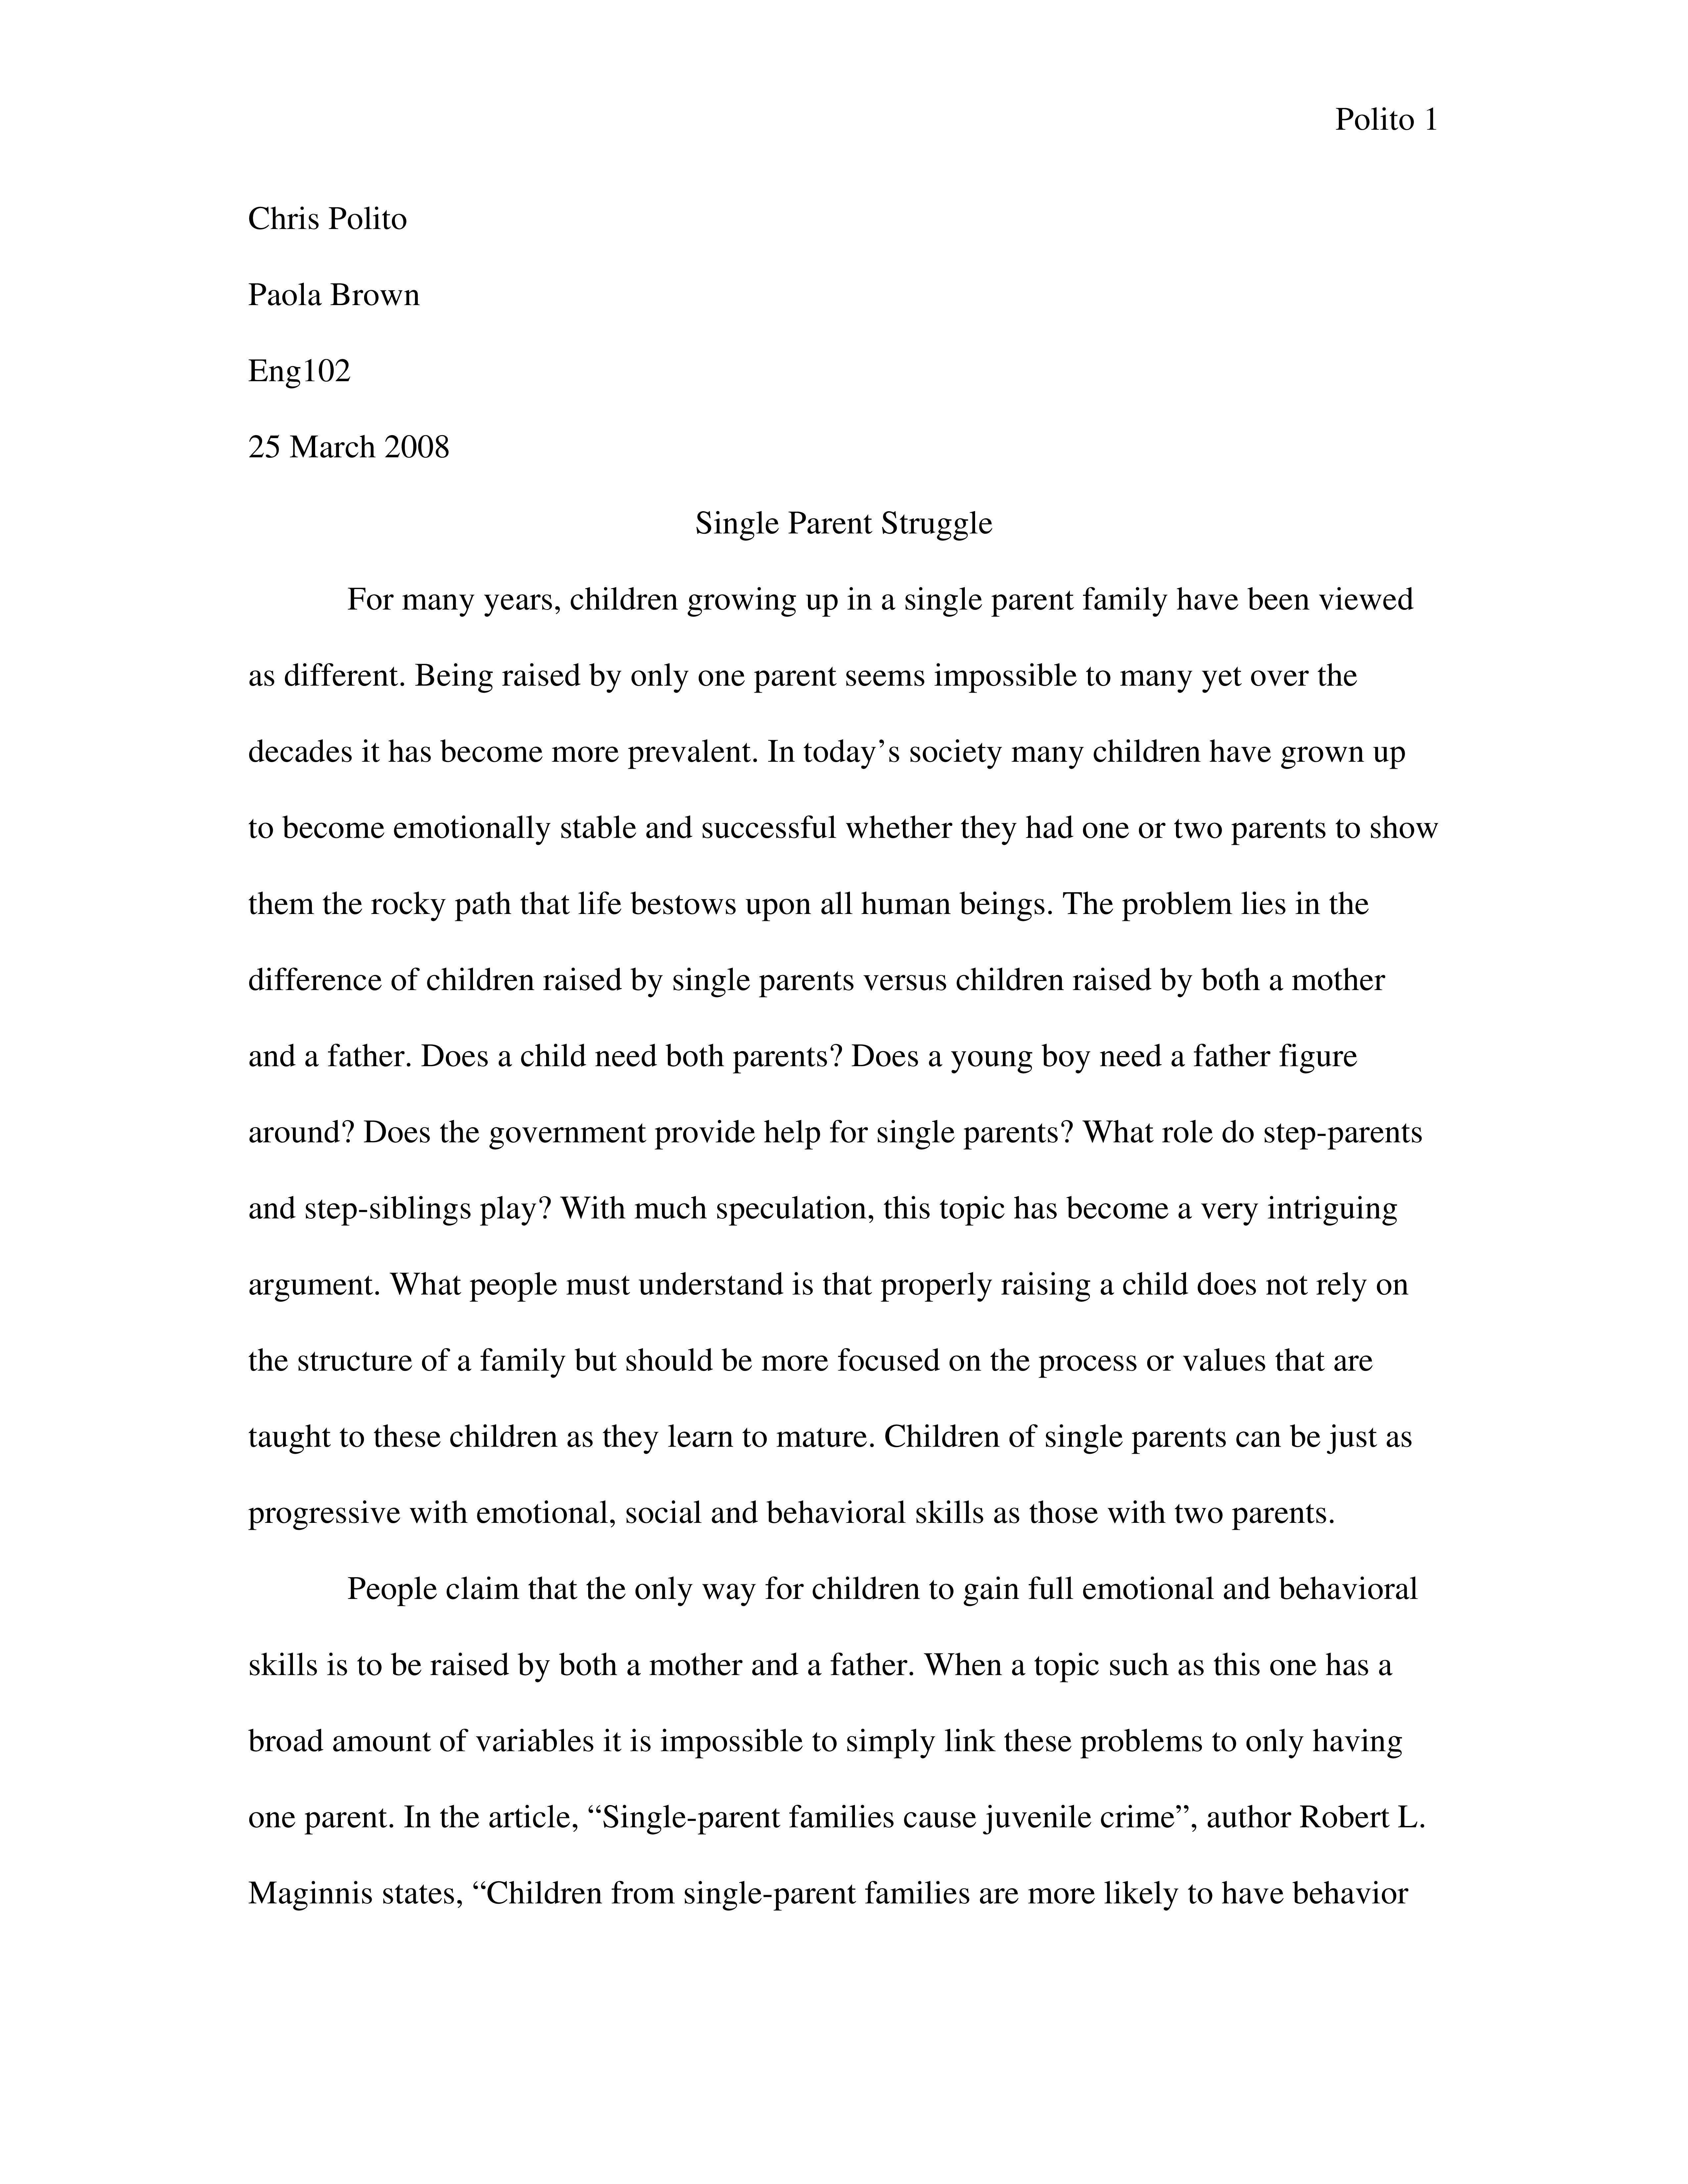 005 Example Of Expository Essay Sample 2 Marvelous Pdf Samples Essays For Middle School Full